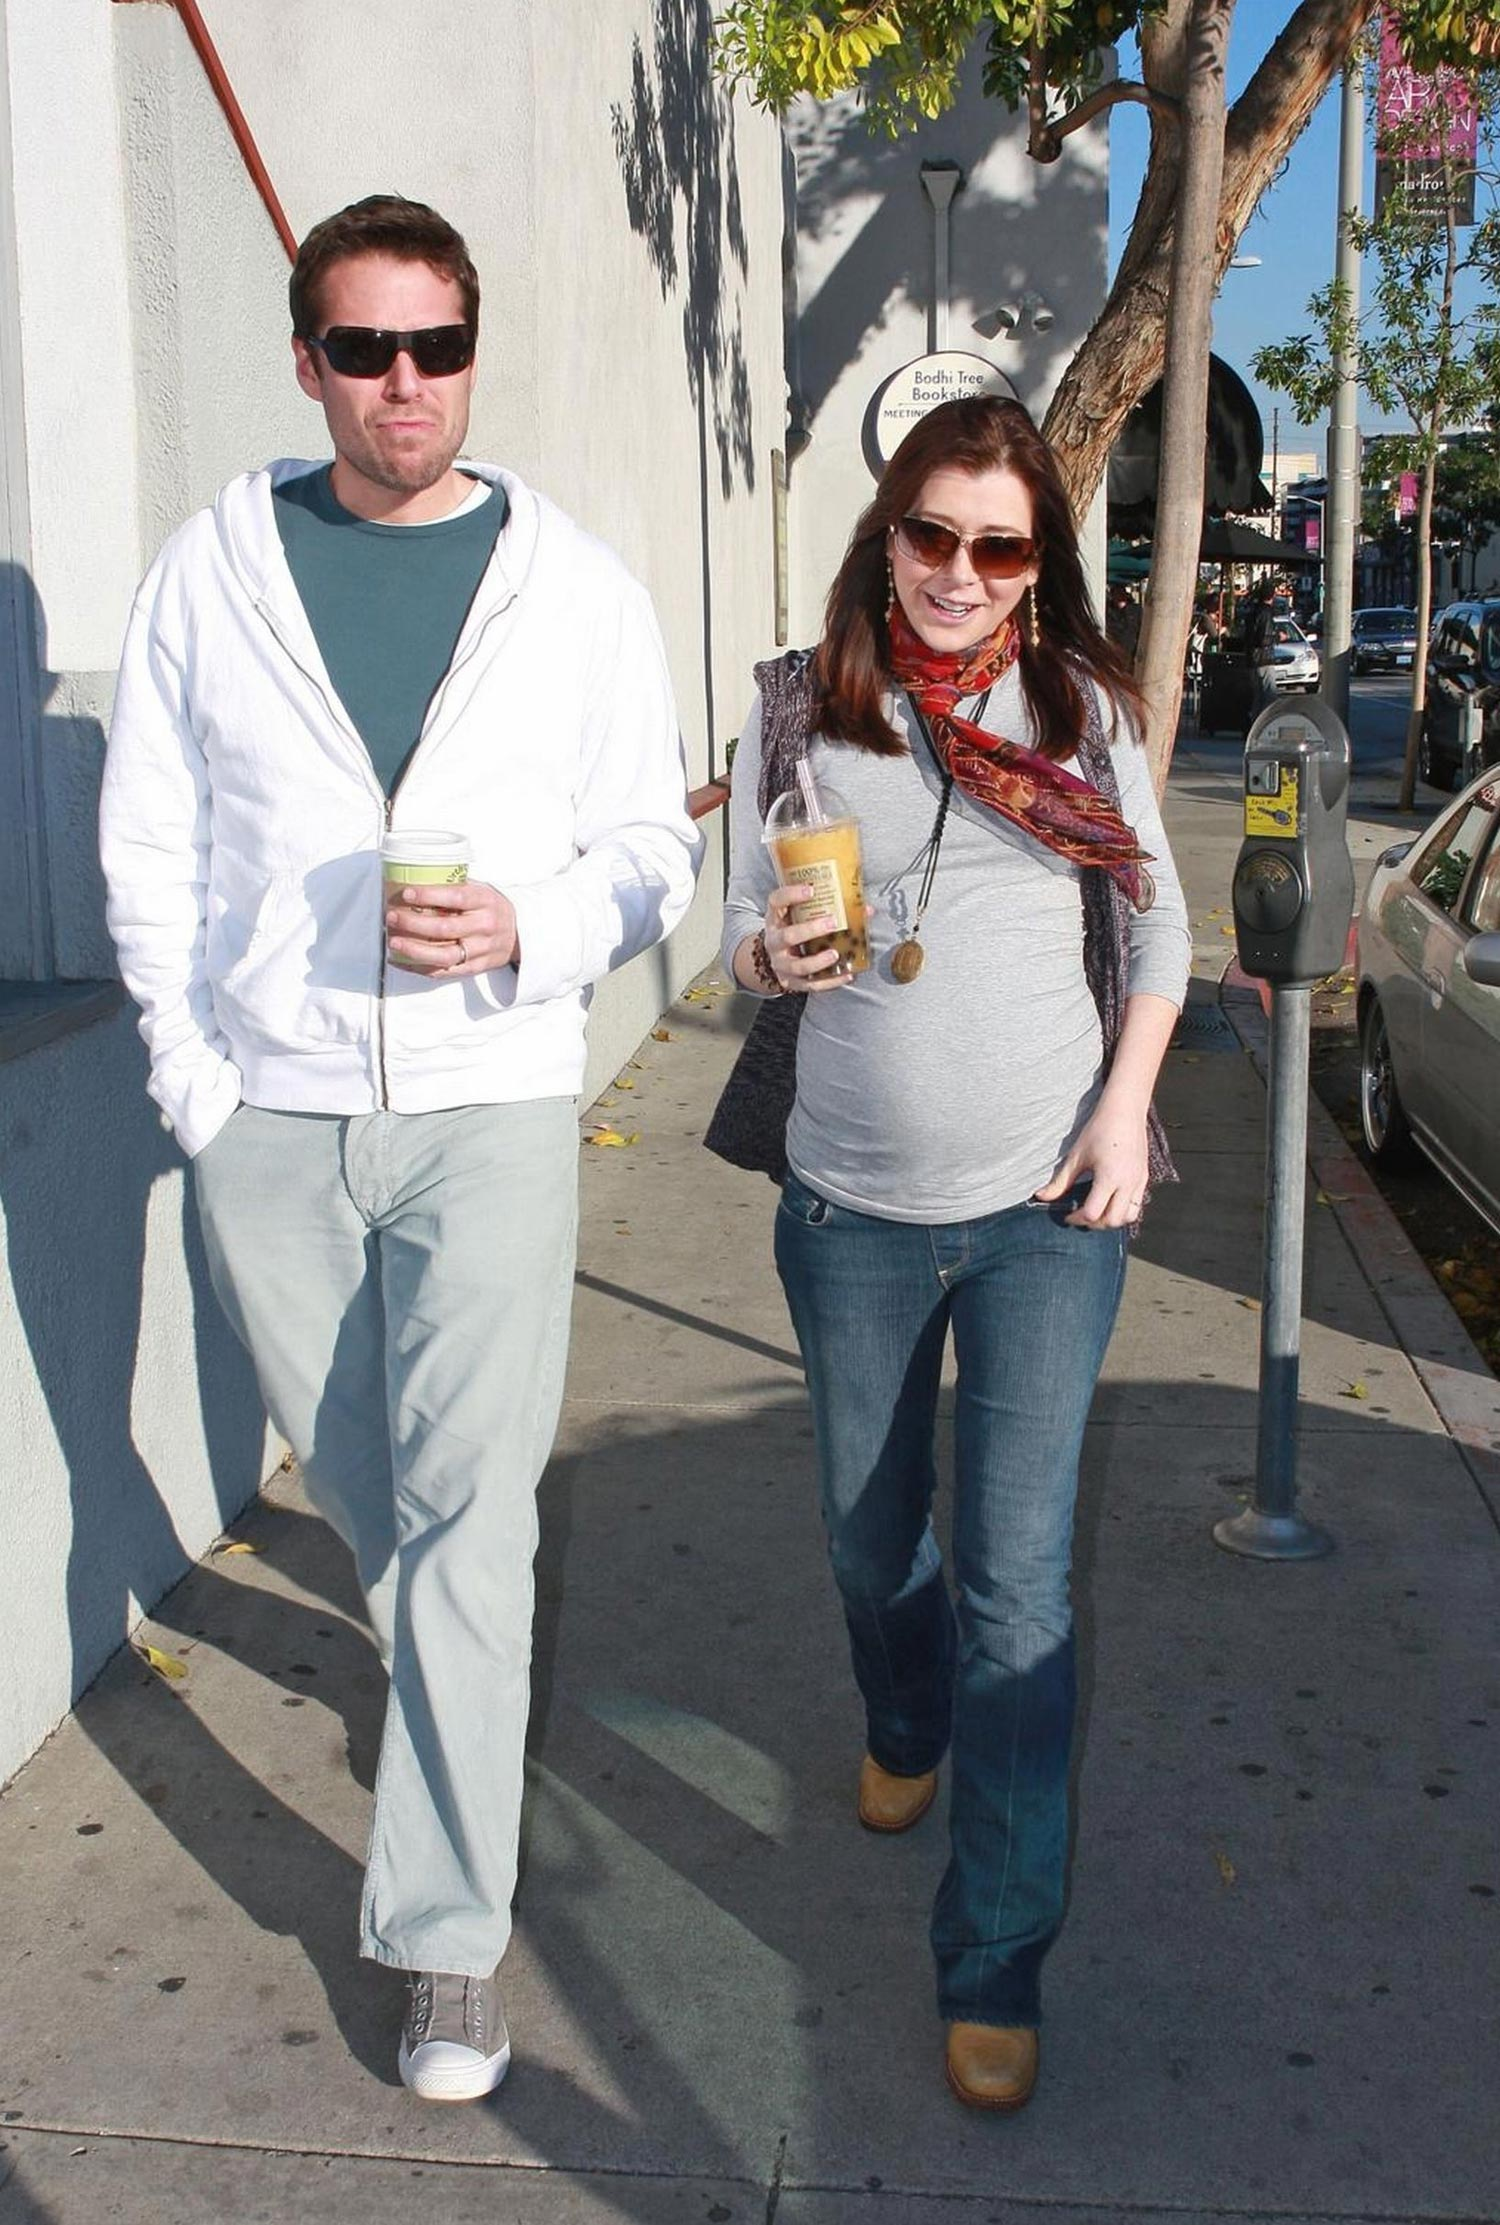 http://whedon.info/IMG/jpg/alyson-hannigan-alexis-denisof-drinks-urth-caffe-los-angeles-paparazzi-hq-01.jpg